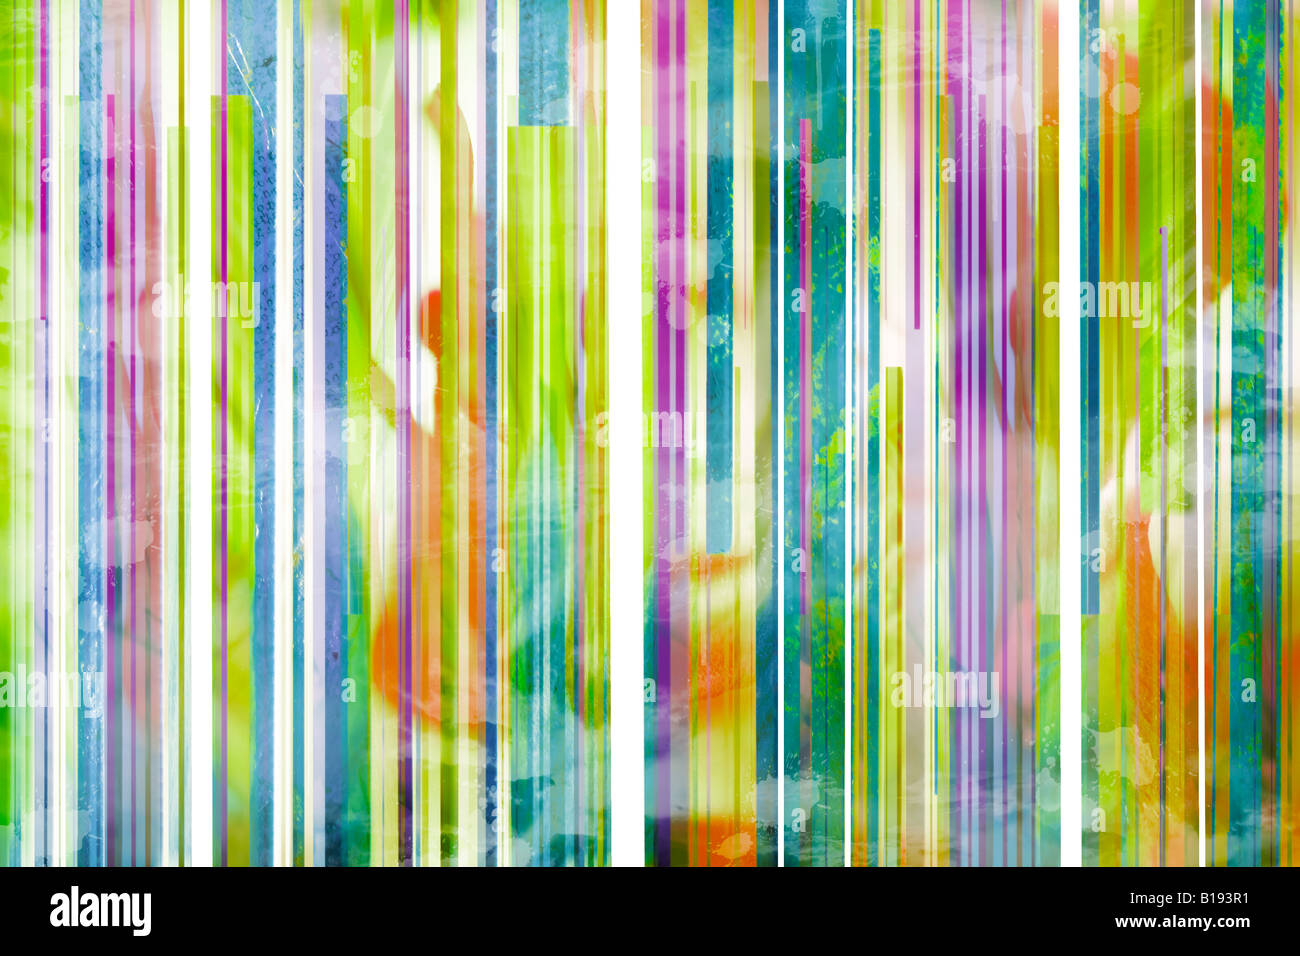 Lines of different colors - Stock Image